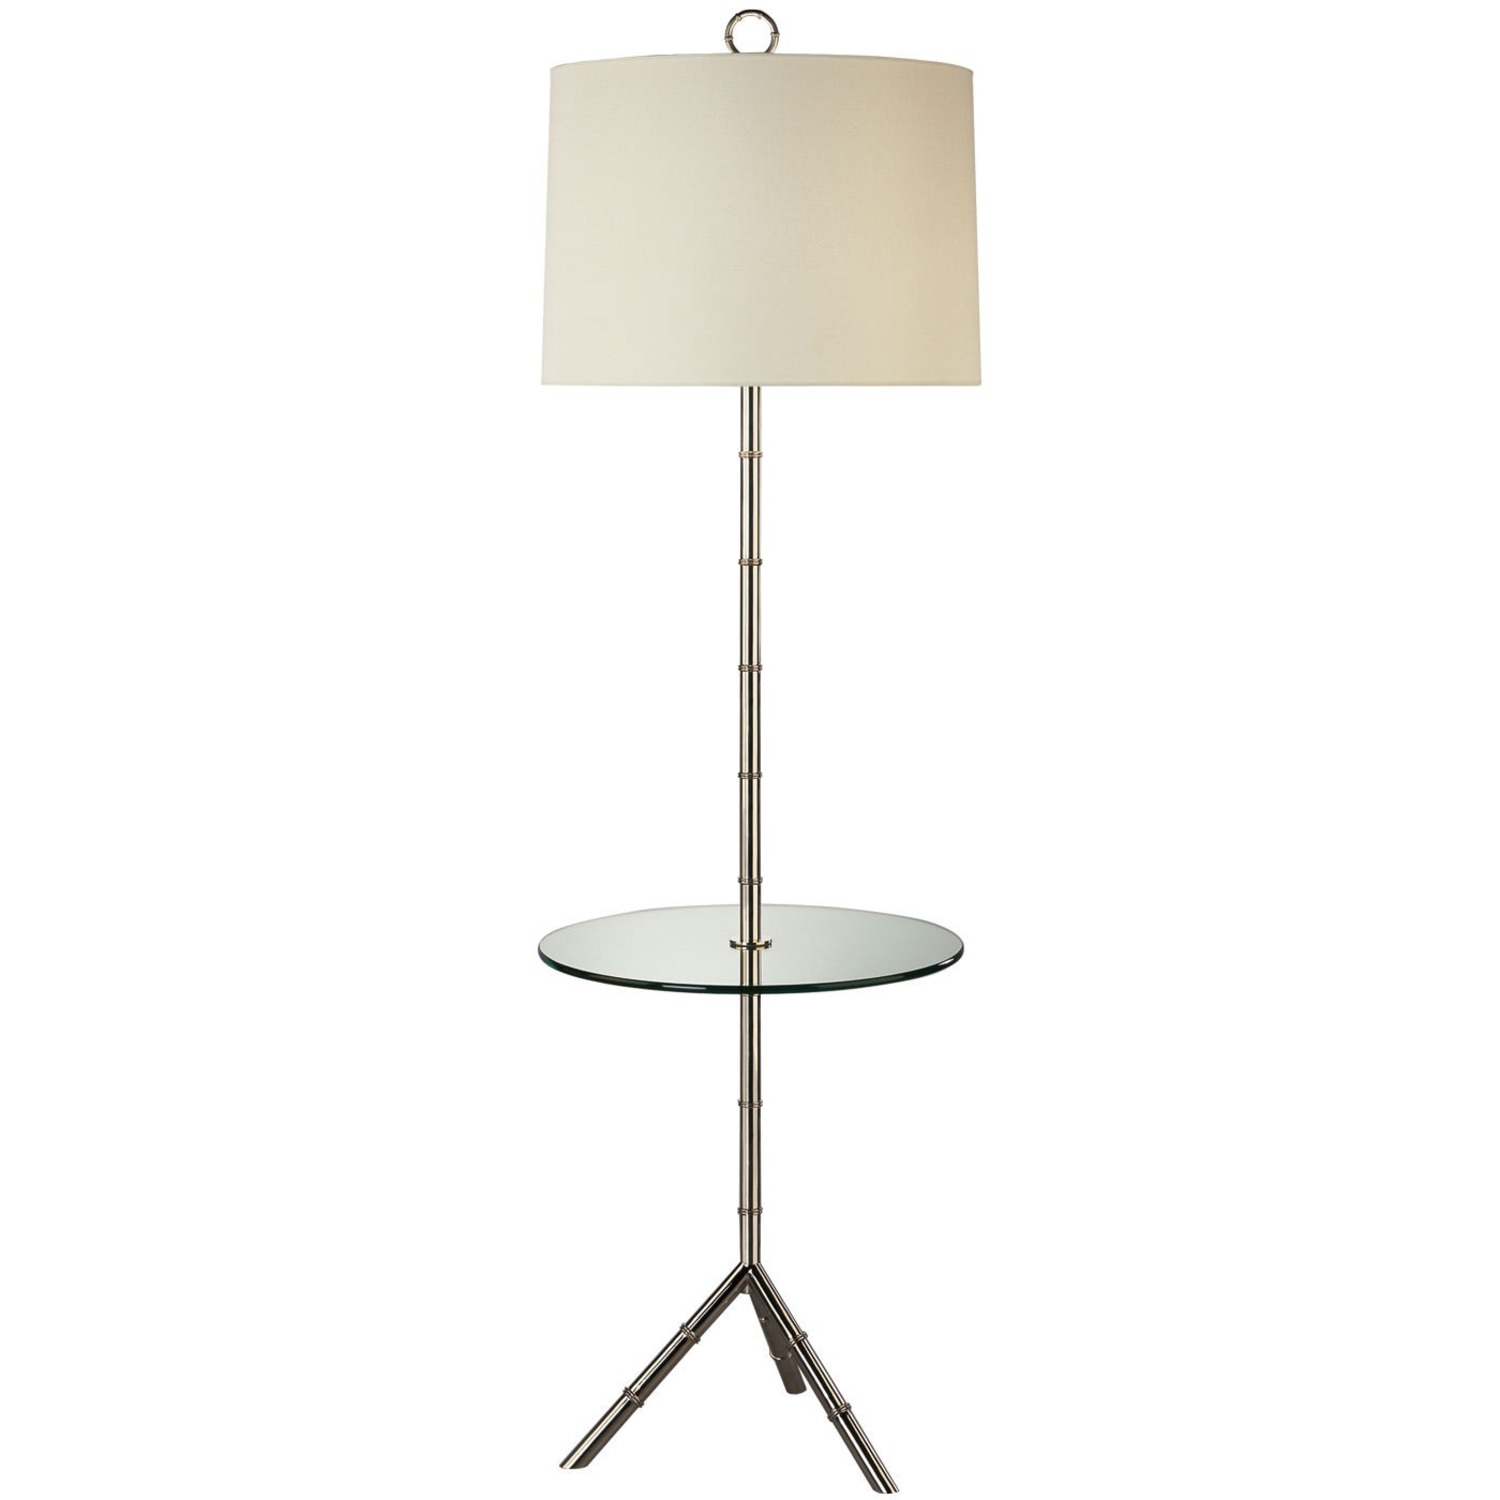 Jonathan Adler Meurice Floor Lamp with Table - image-0